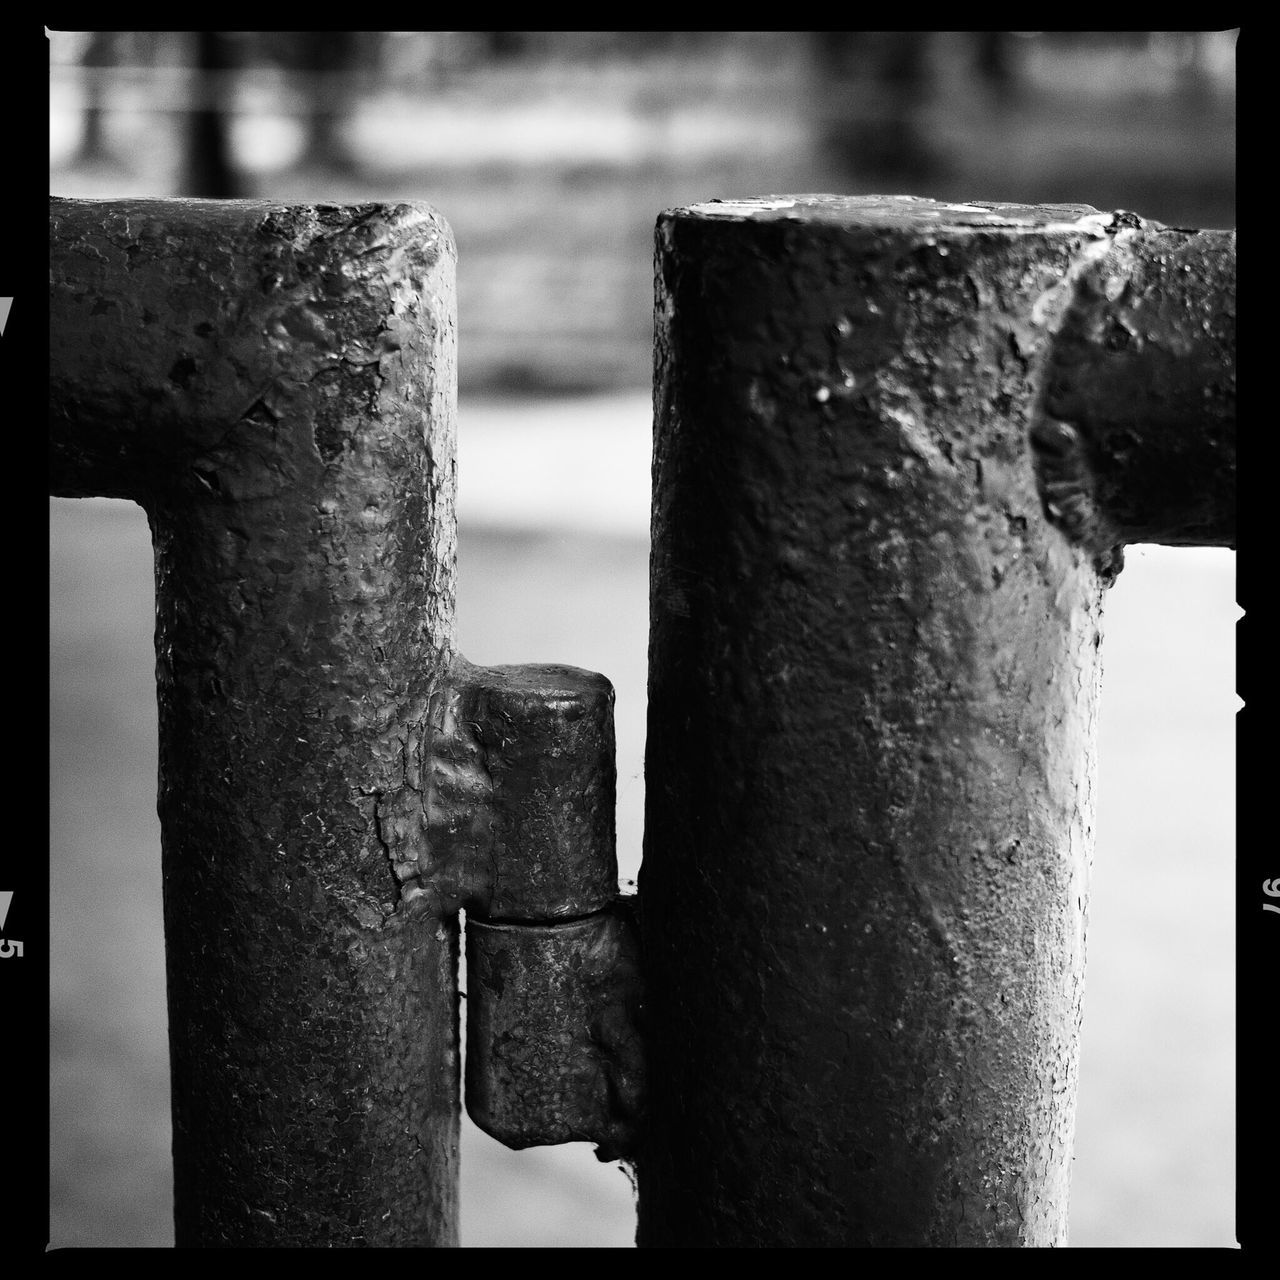 metal, close-up, strength, no people, focus on foreground, rusty, outdoors, nut - fastener, day, water, hinge, girder